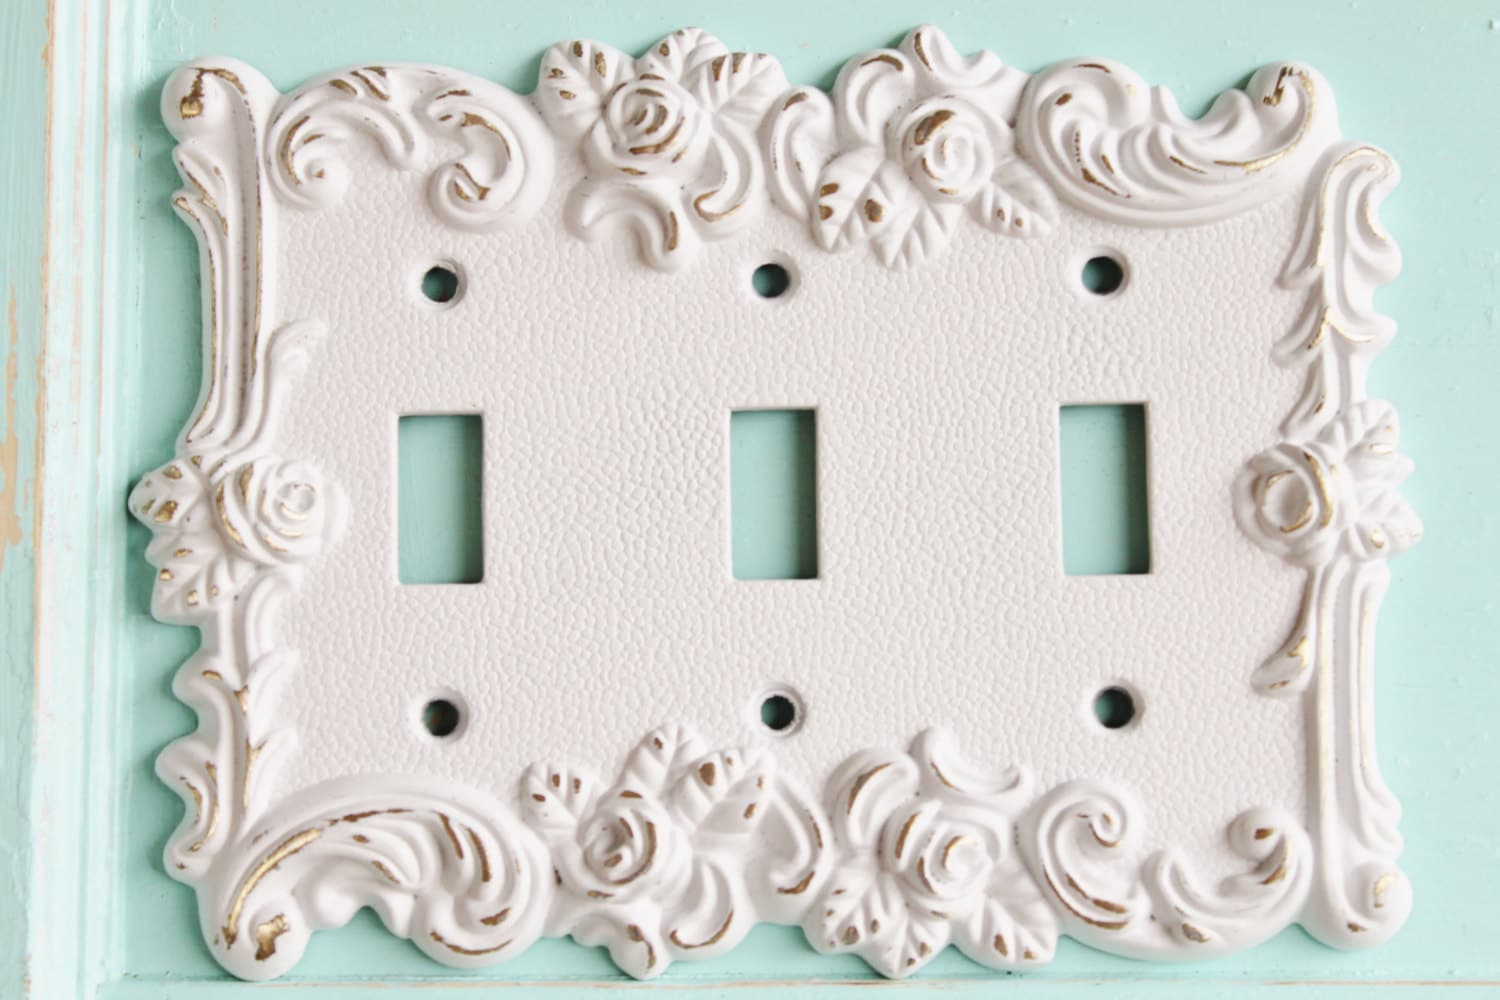 Outlet Switch Covers Victorian Antique Vintage Style Rose 3 Toggle Light Switch